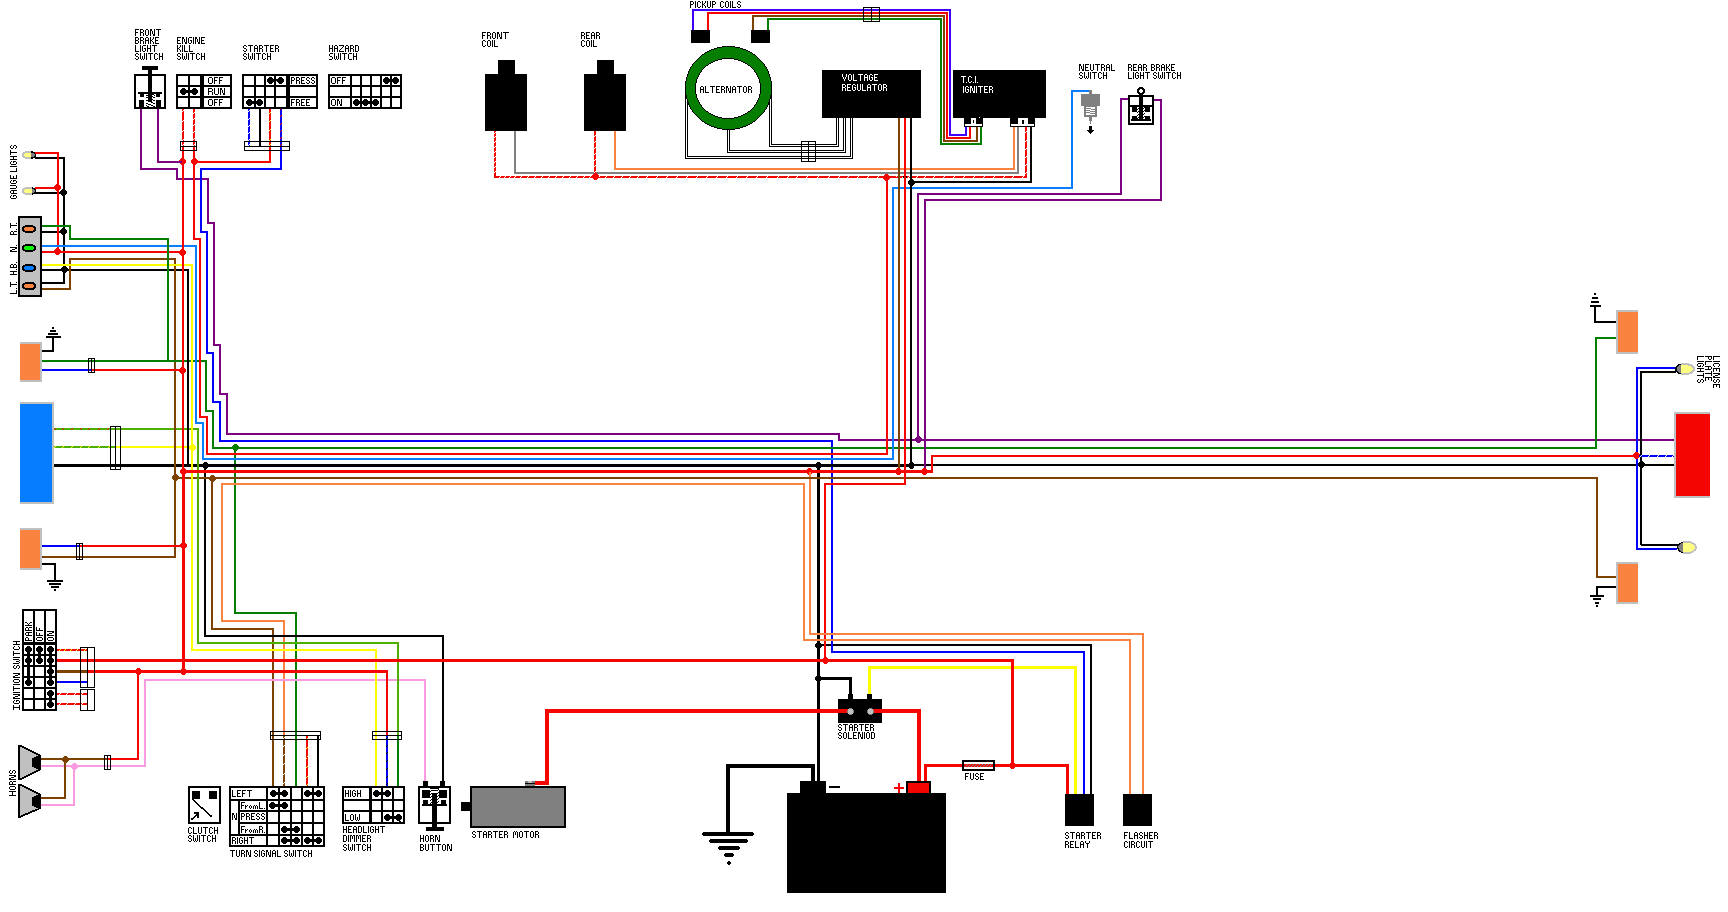 Wiring Diagrams.htm on yamaha atv wiring diagram, ttr 125 wiring diagram, yamaha ttr wiring diagram, yamaha out board motors, yamaha 80 wiring diagram, yamaha digital gauge wiring, yamaha outboard control wiring, yamaha fuel gauge wiring diagram, yamaha maxim wiring diagram, yamaha 90 fuel tank, johnson wiring harness diagram, yamaha outboard control parts, yamaha marine gauge wiring diagram, yamaha xj wiring diagram, yamaha 70 hp wiring diagram, 2002 yamaha wiring diagram, yamaha 90 engine, mercury wiring harness diagram, yamaha ignition switch wiring diagram, outboard wiring diagram,